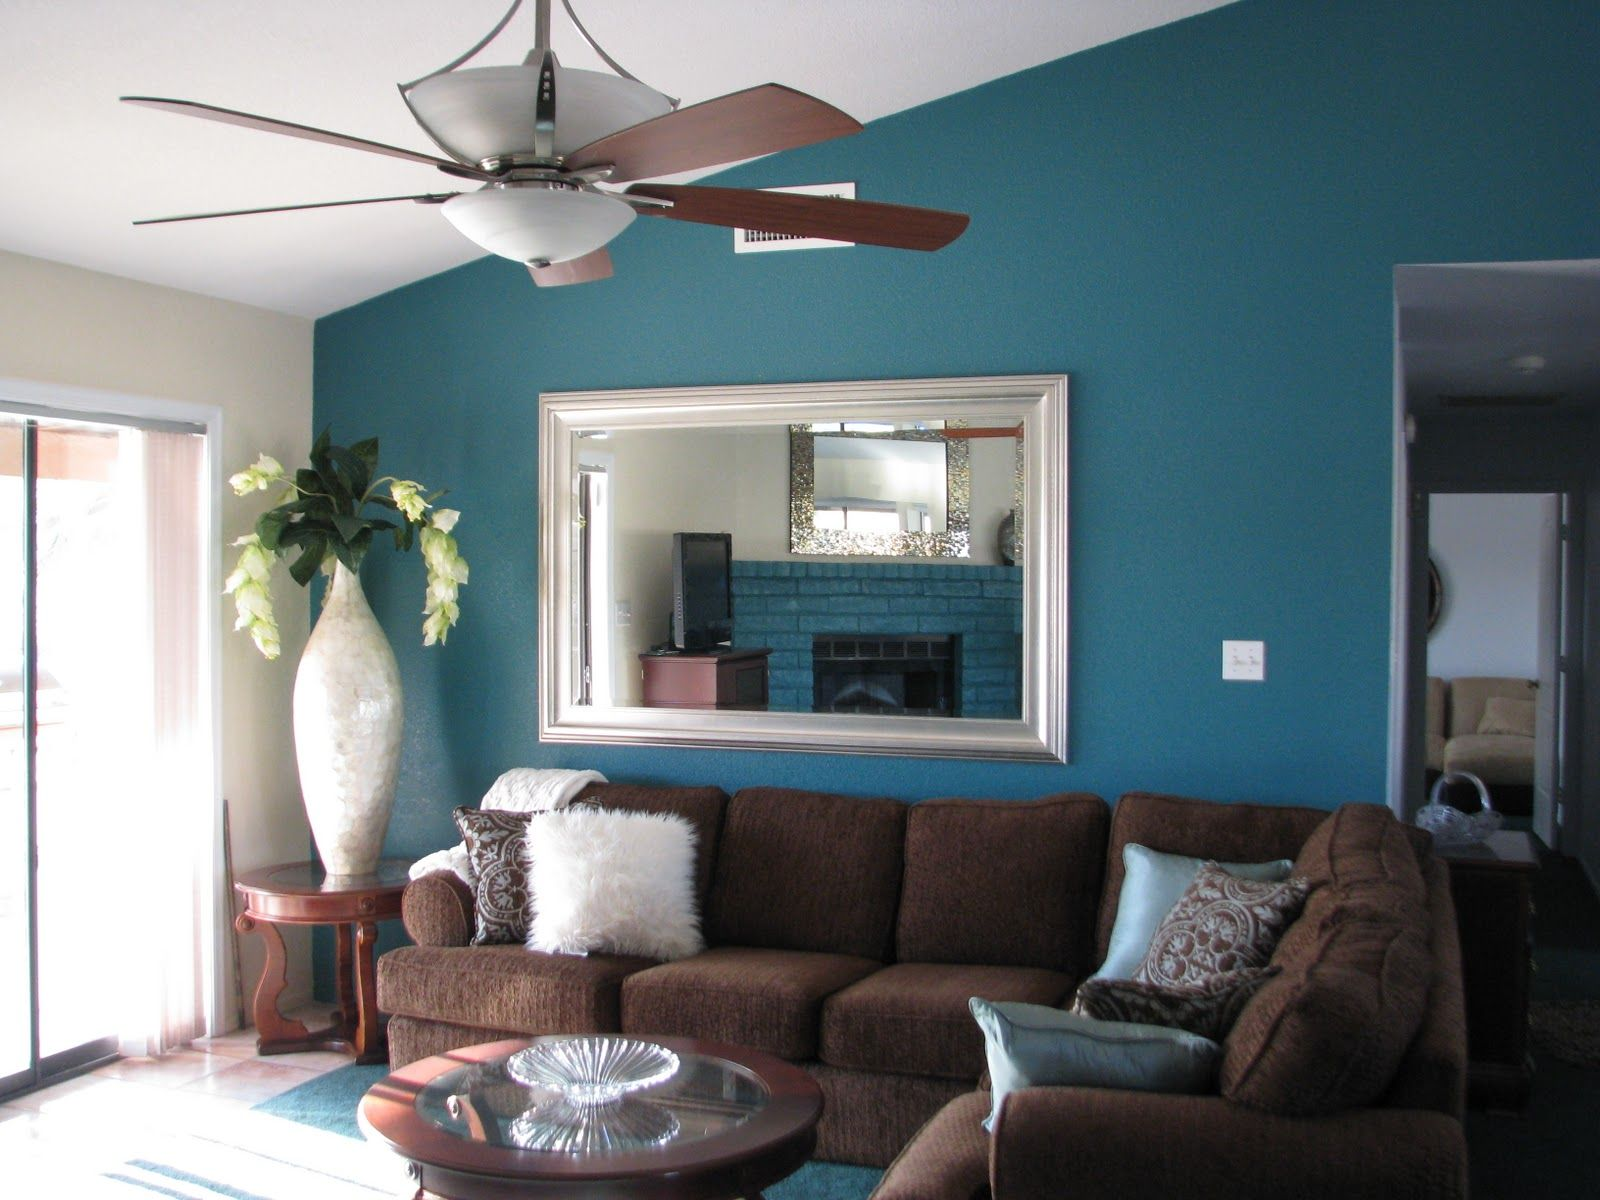 Furniture, Inviting Benjamin Moore Colors 2012 For Cozy Interior Living Room  With Comfortable Sofa And Chic Pillows And Wall Mirror With Blue Rug:  Benjamin ...